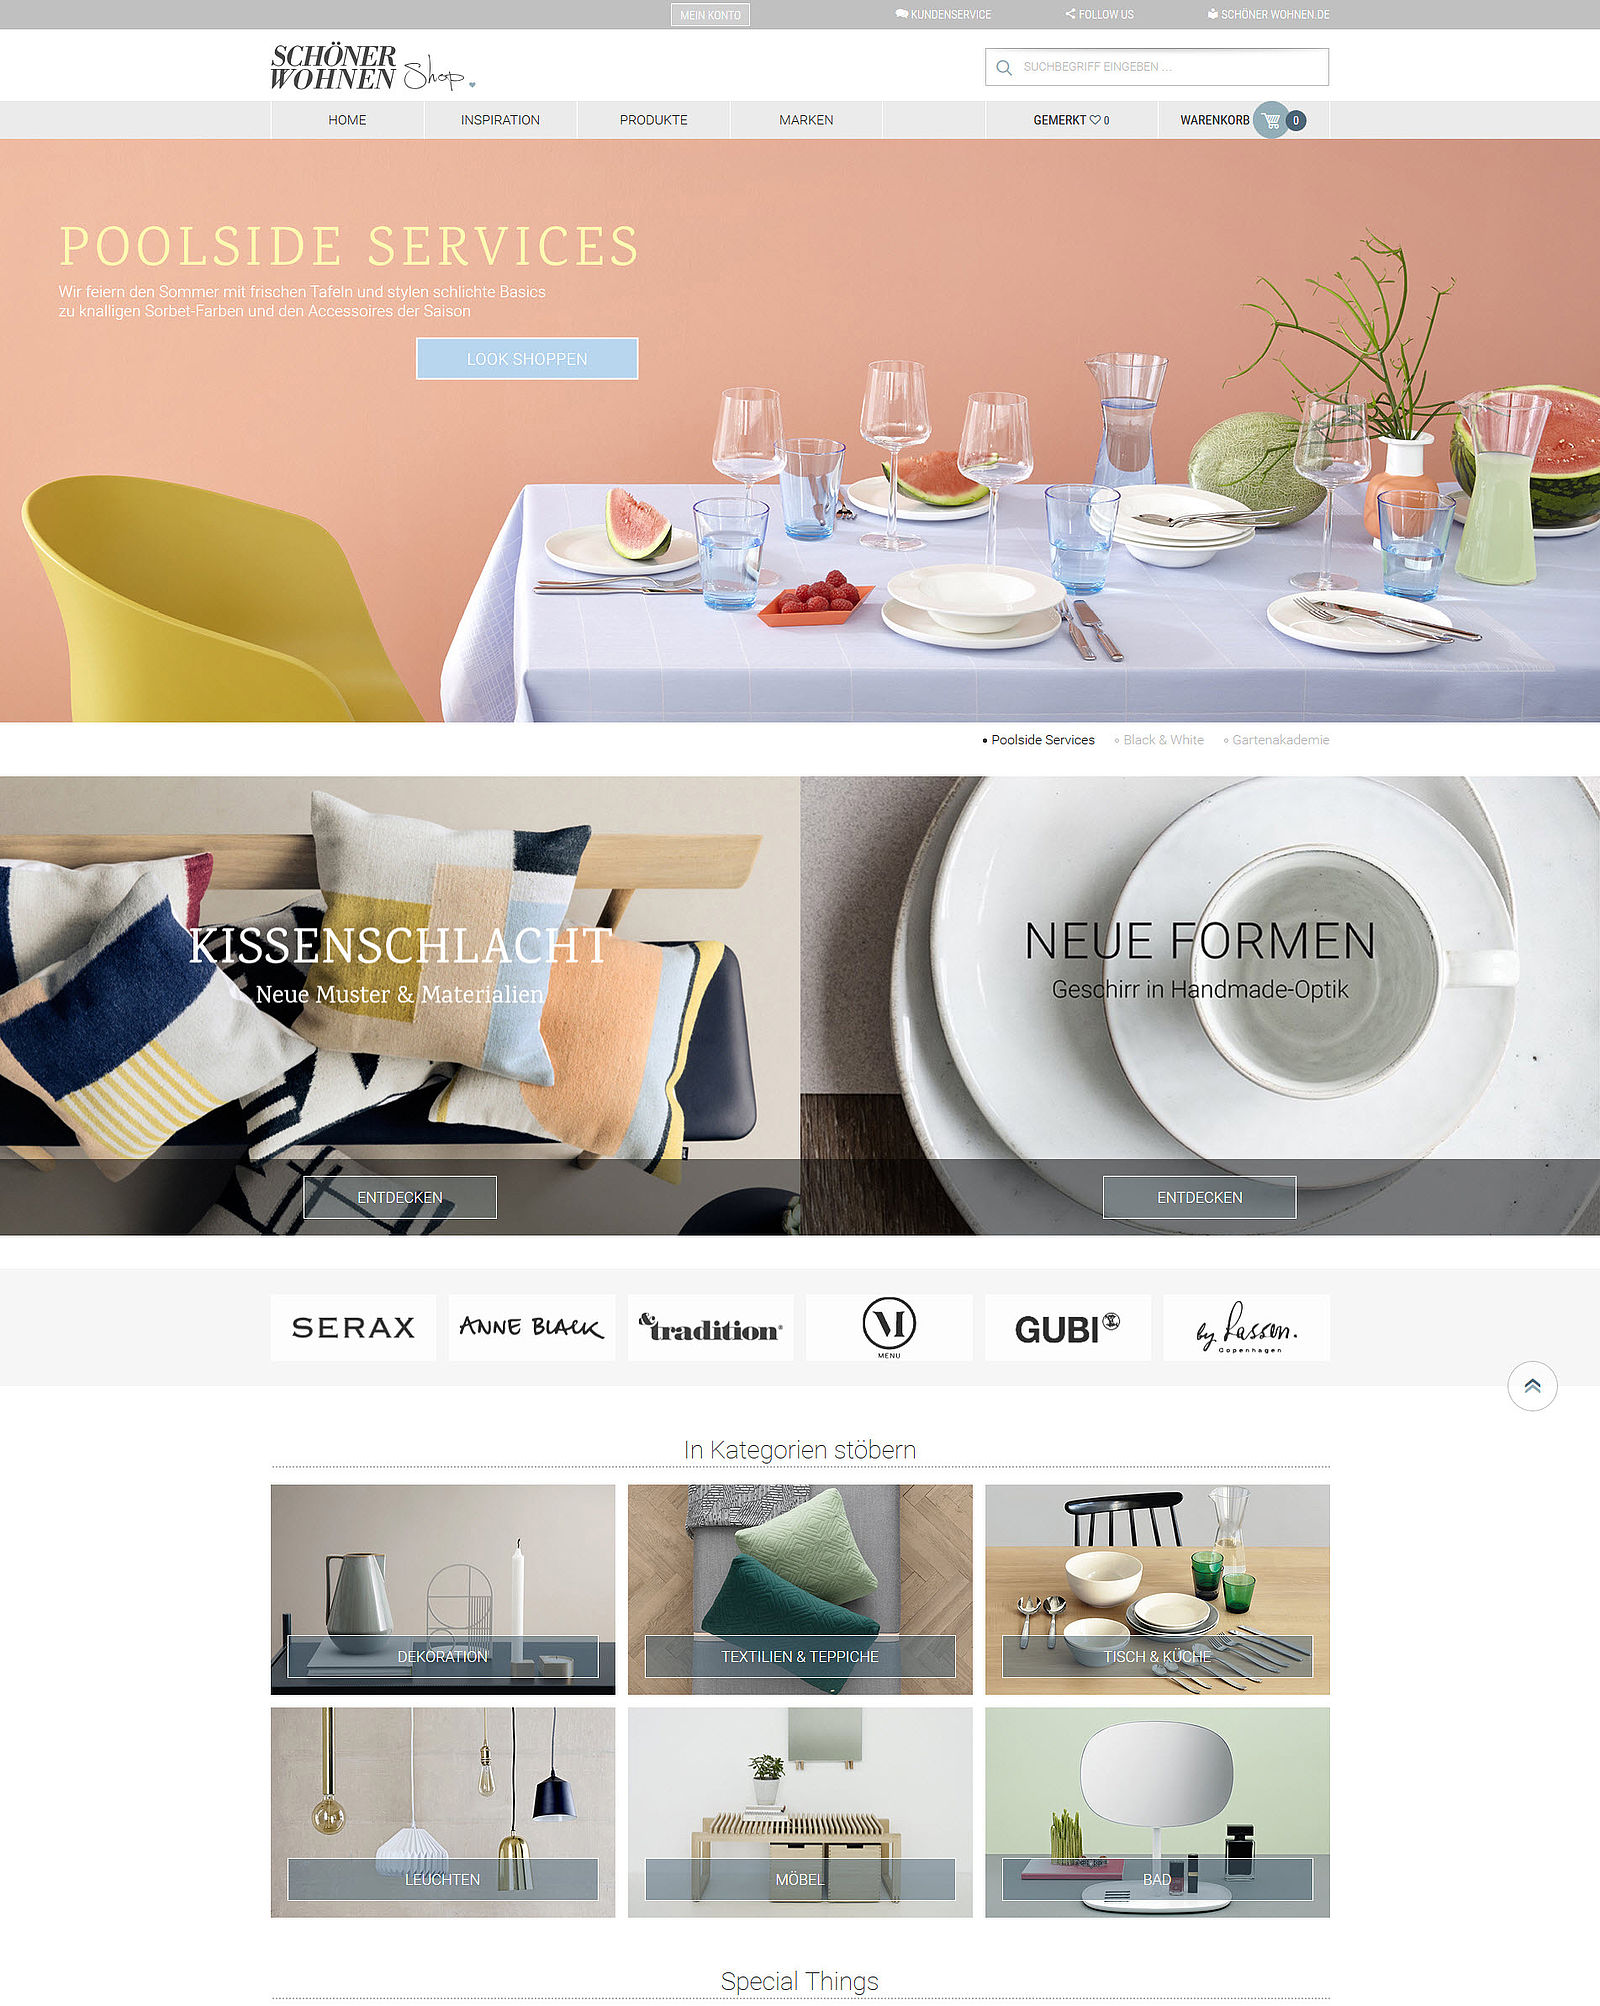 Sch ner wohnen launches own online shop for Onlineshop wohnen